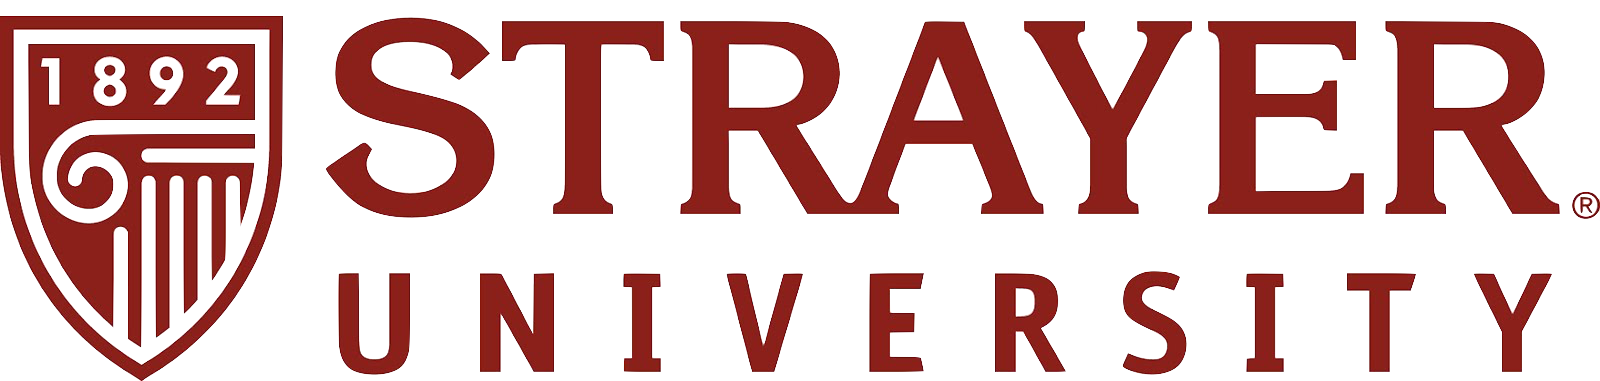 Strayer University Online Logo